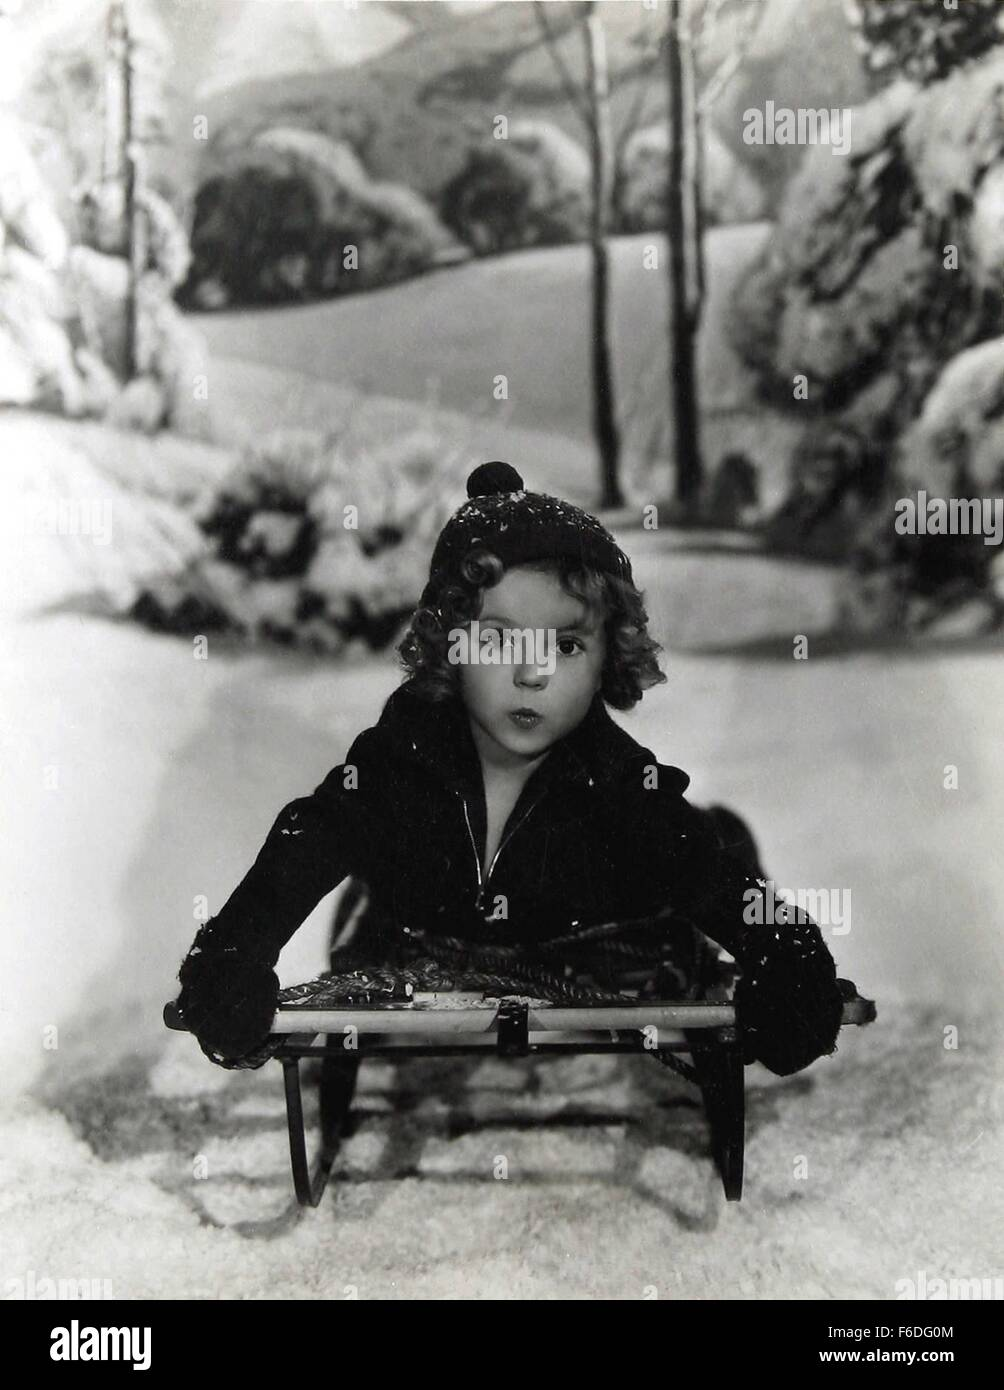 Shirley temple black book